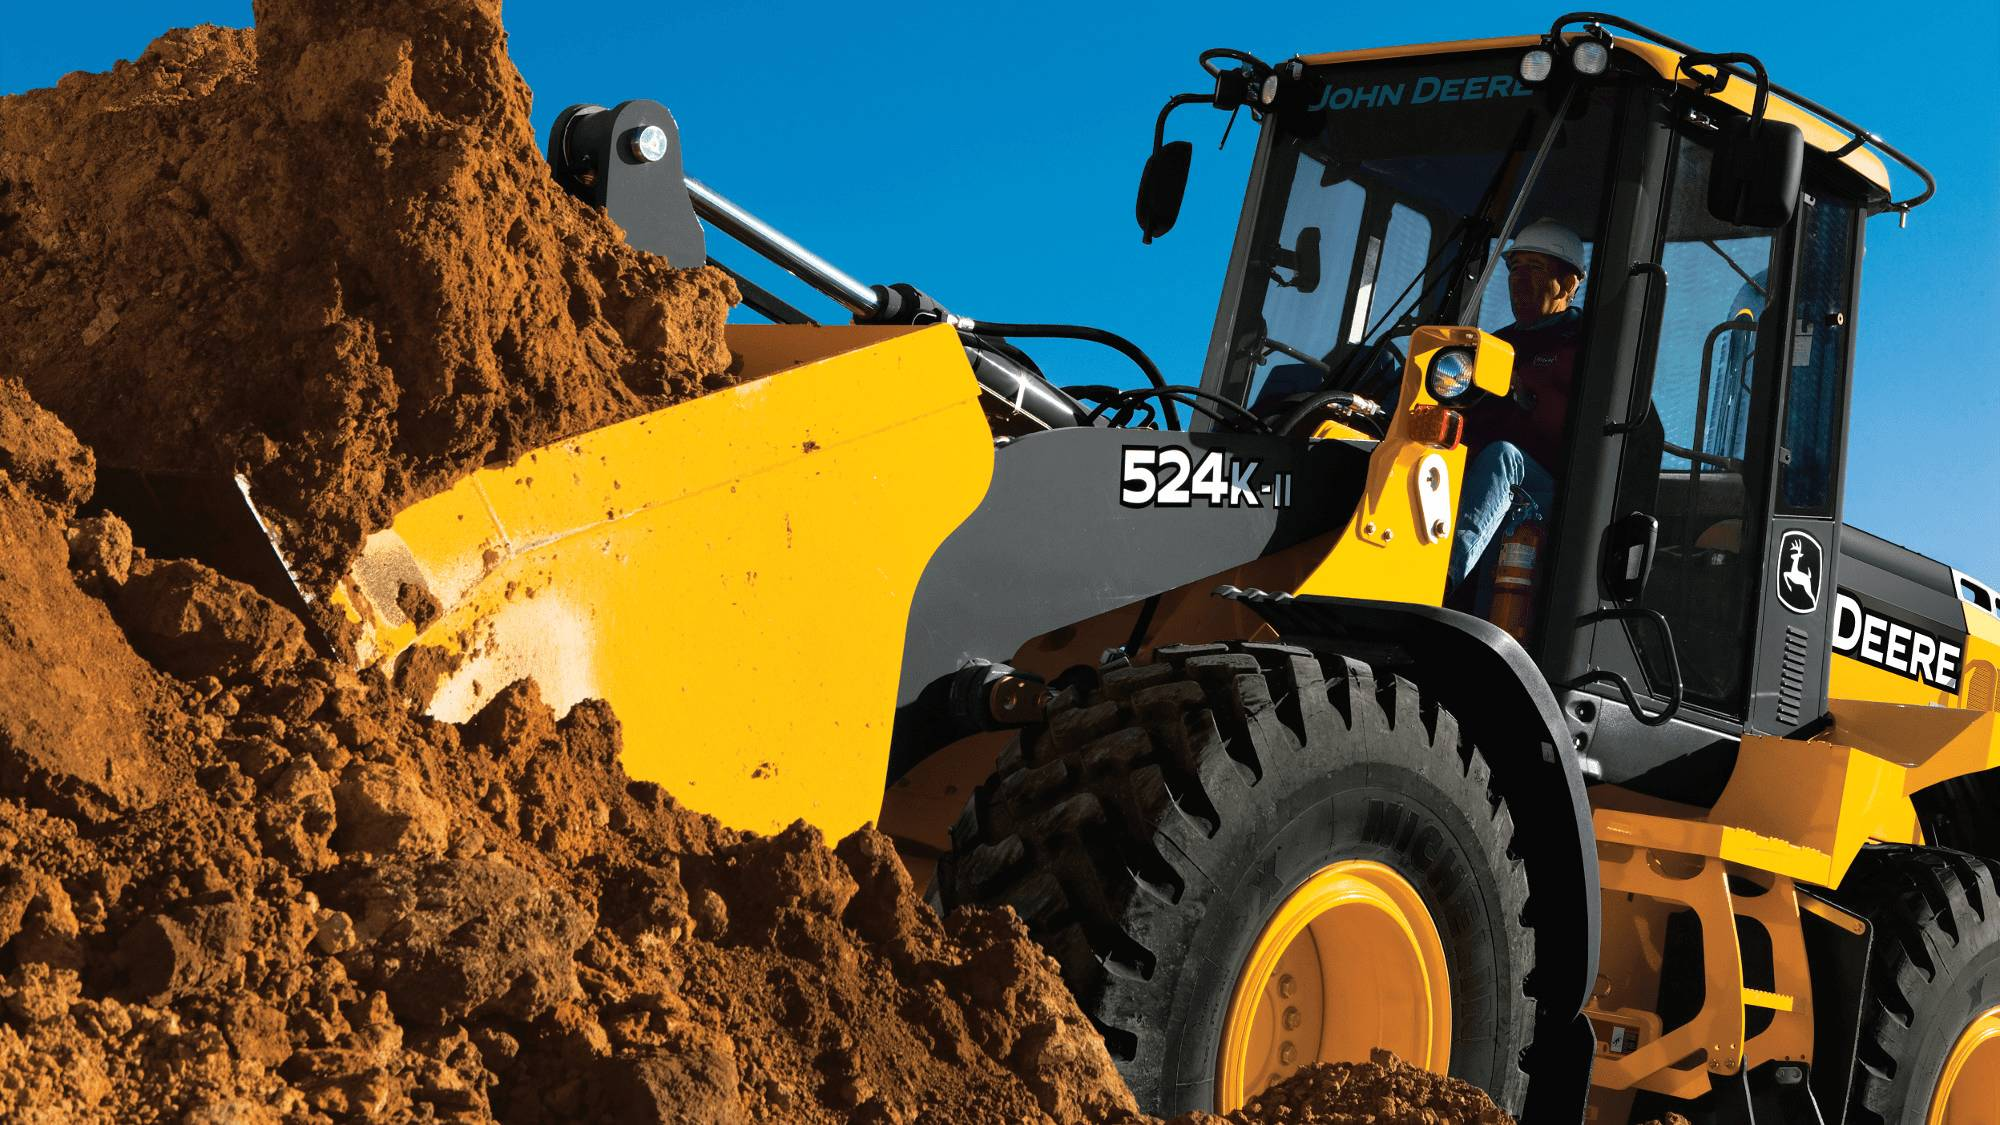 John Deere 524K-II Wheel Loaders